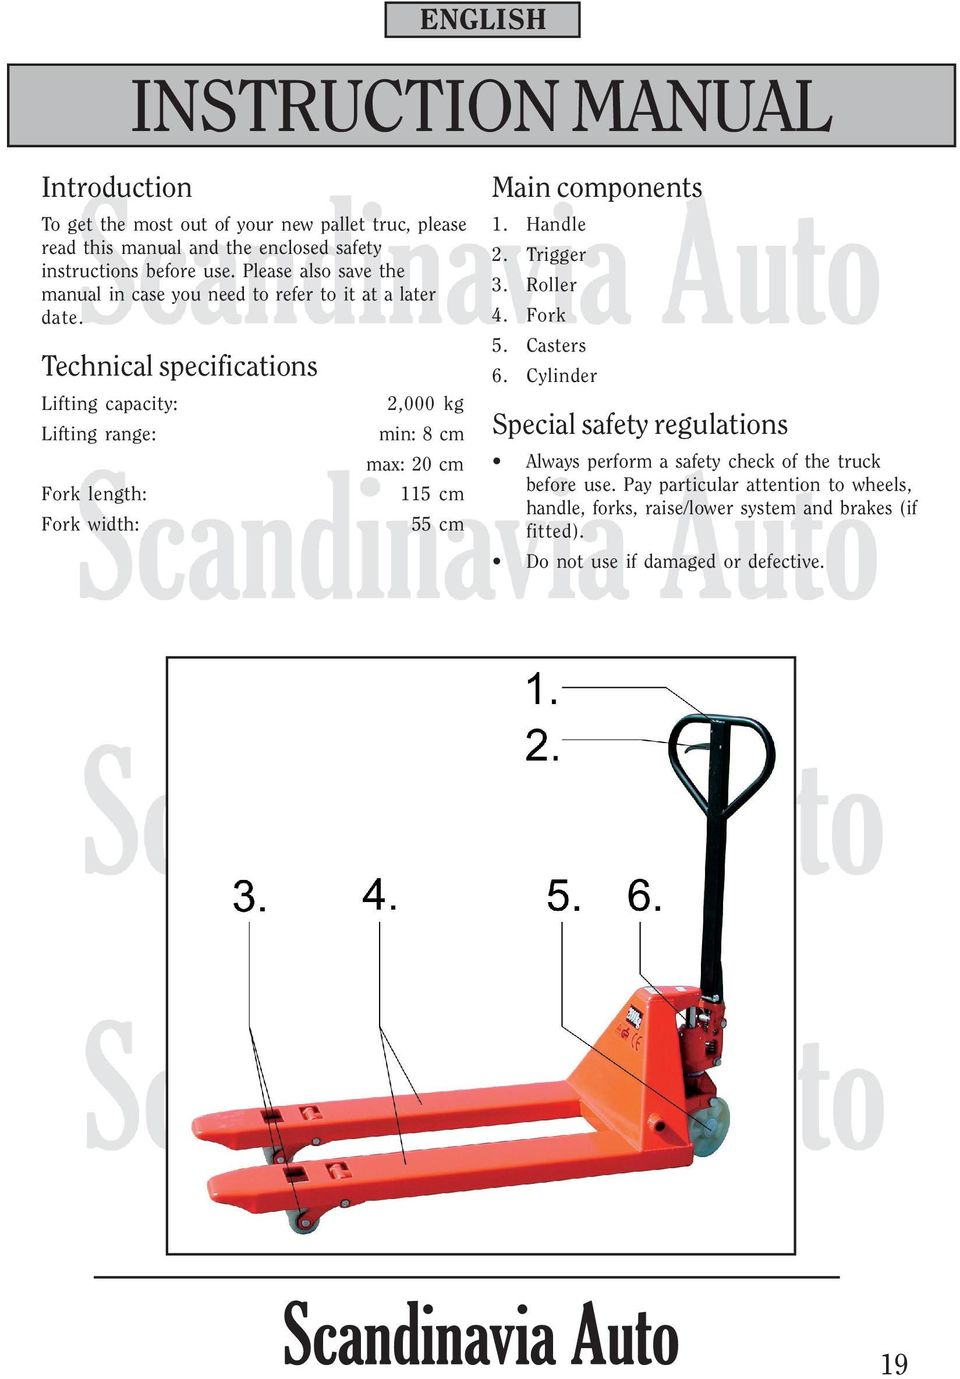 Technical specifications Lifting capacity: Lifting range: Fork length: Fork width: 2,000 kg min: 8 cm max: 20 cm 115 cm 55 cm Main components 1. Handle 2.